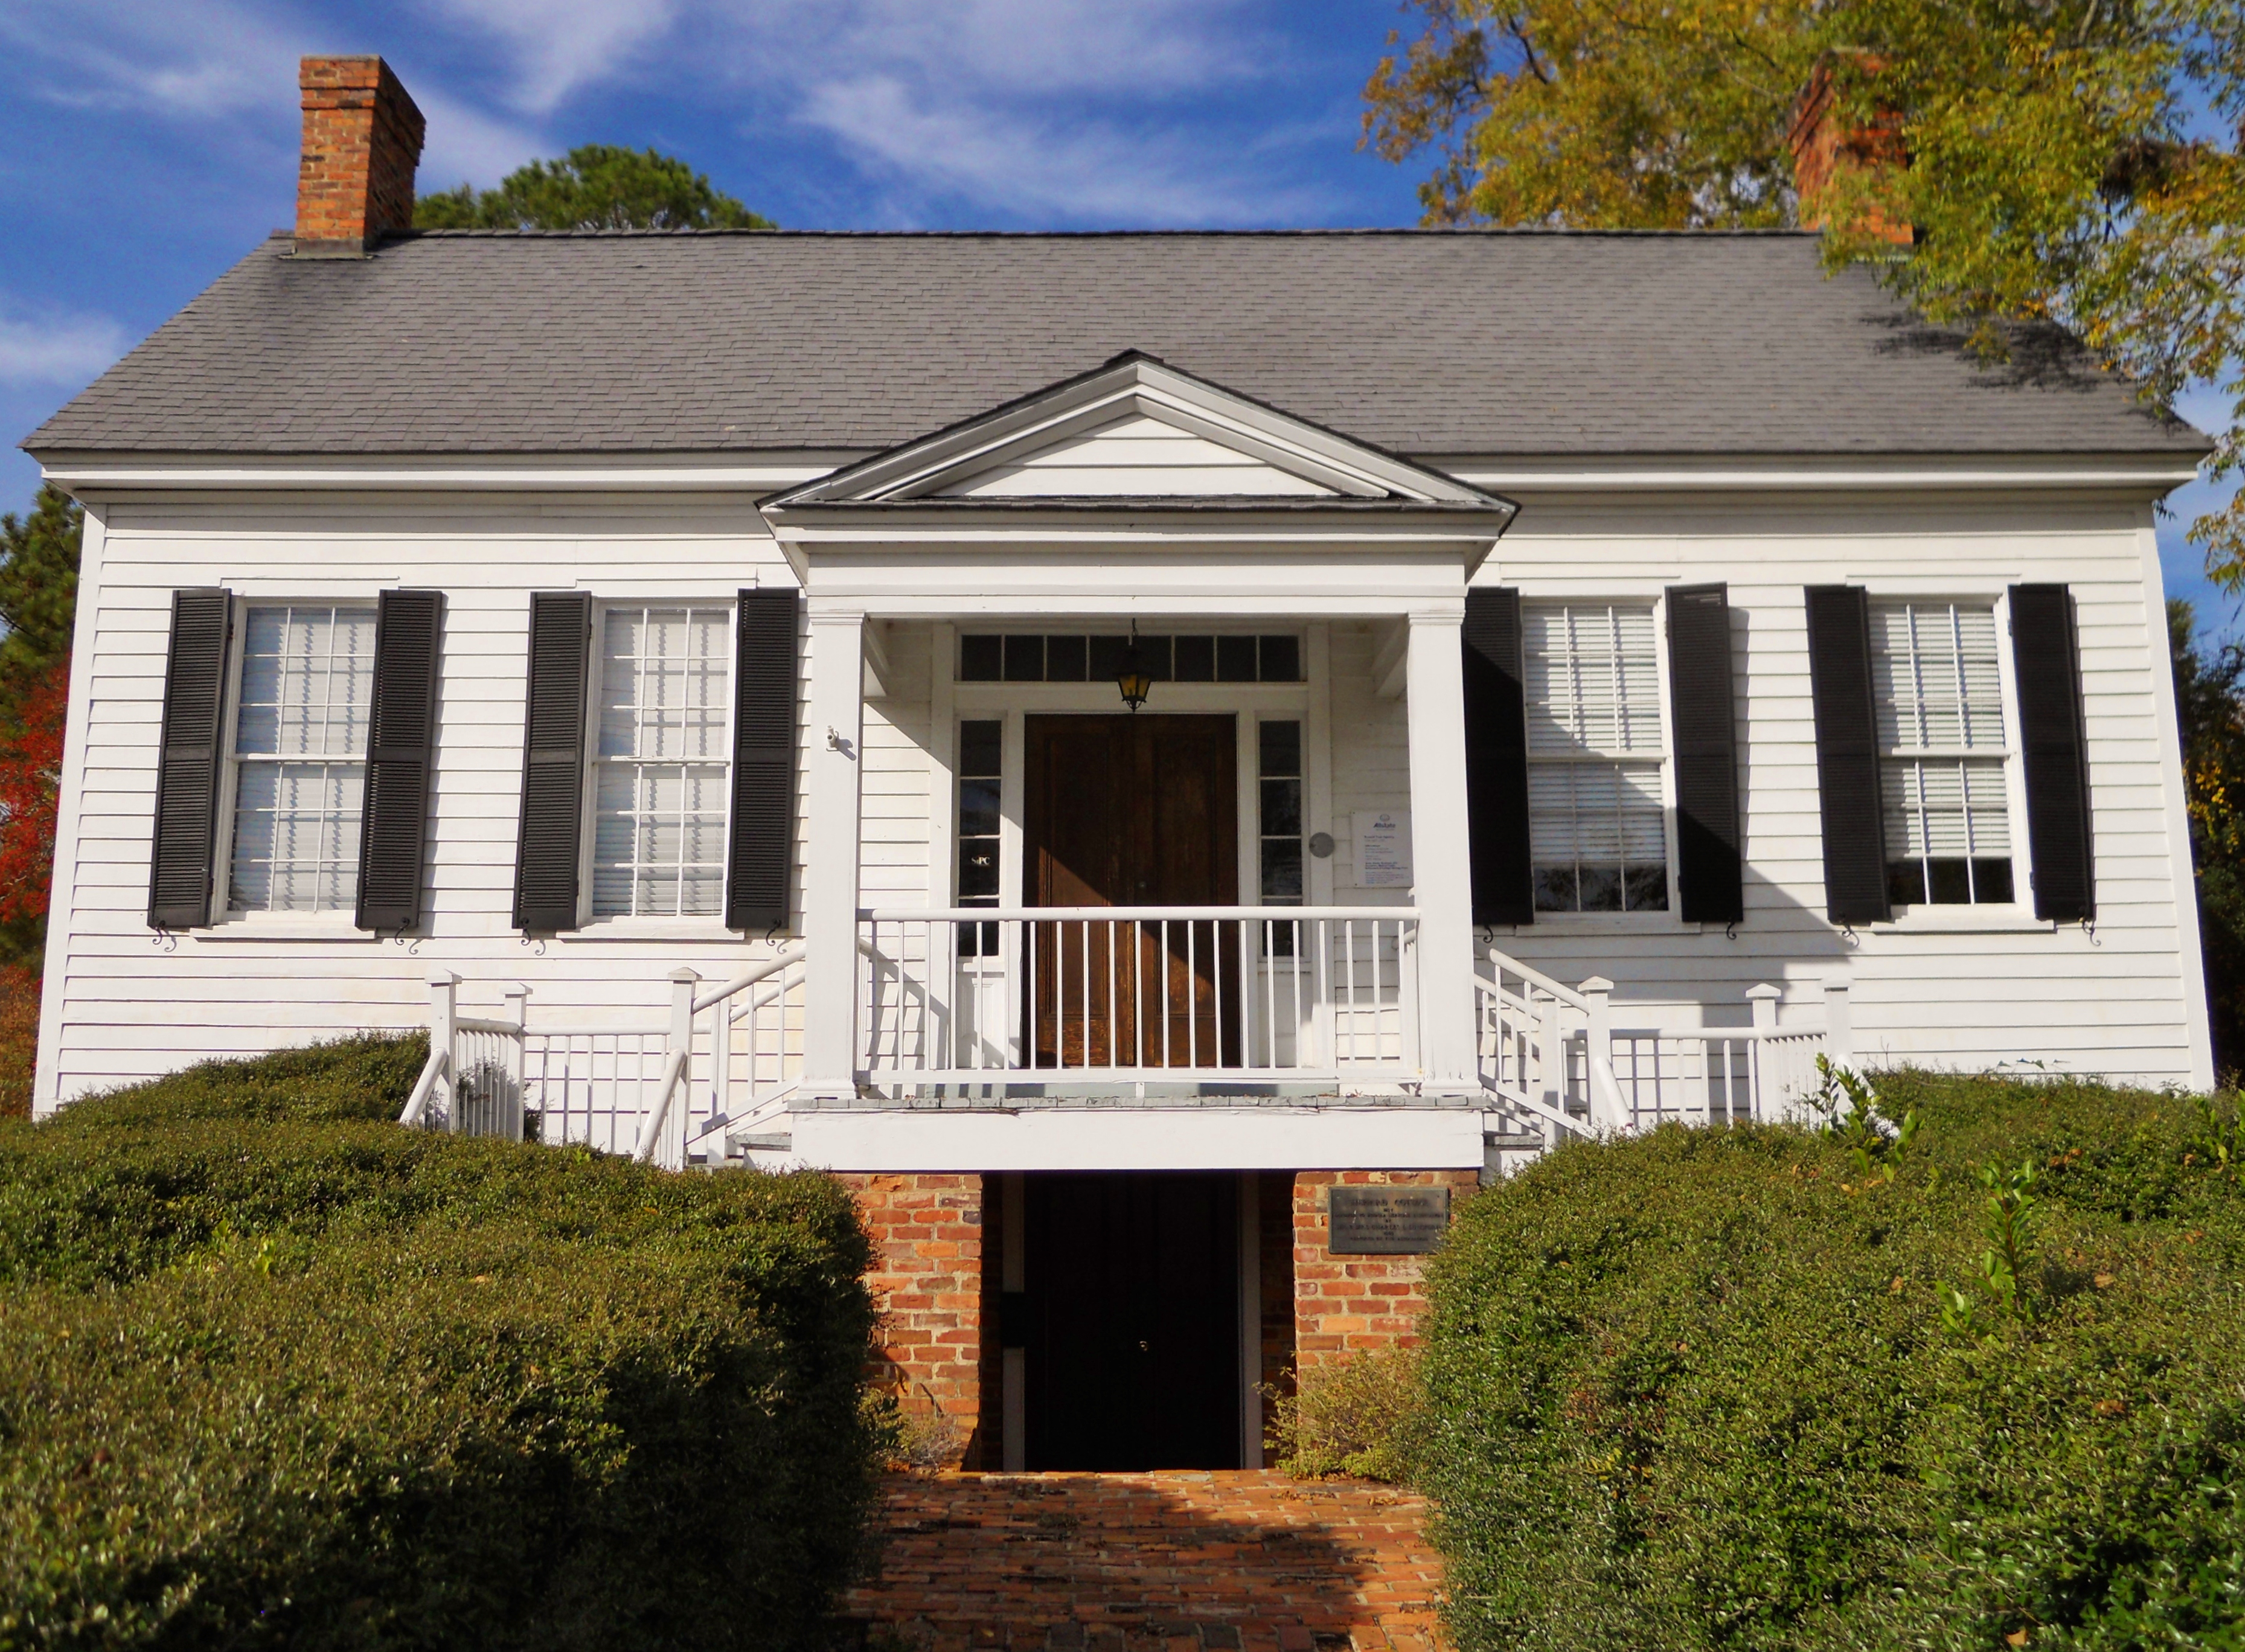 1000 images about southern architecture on pinterest for Compact cottages georgia